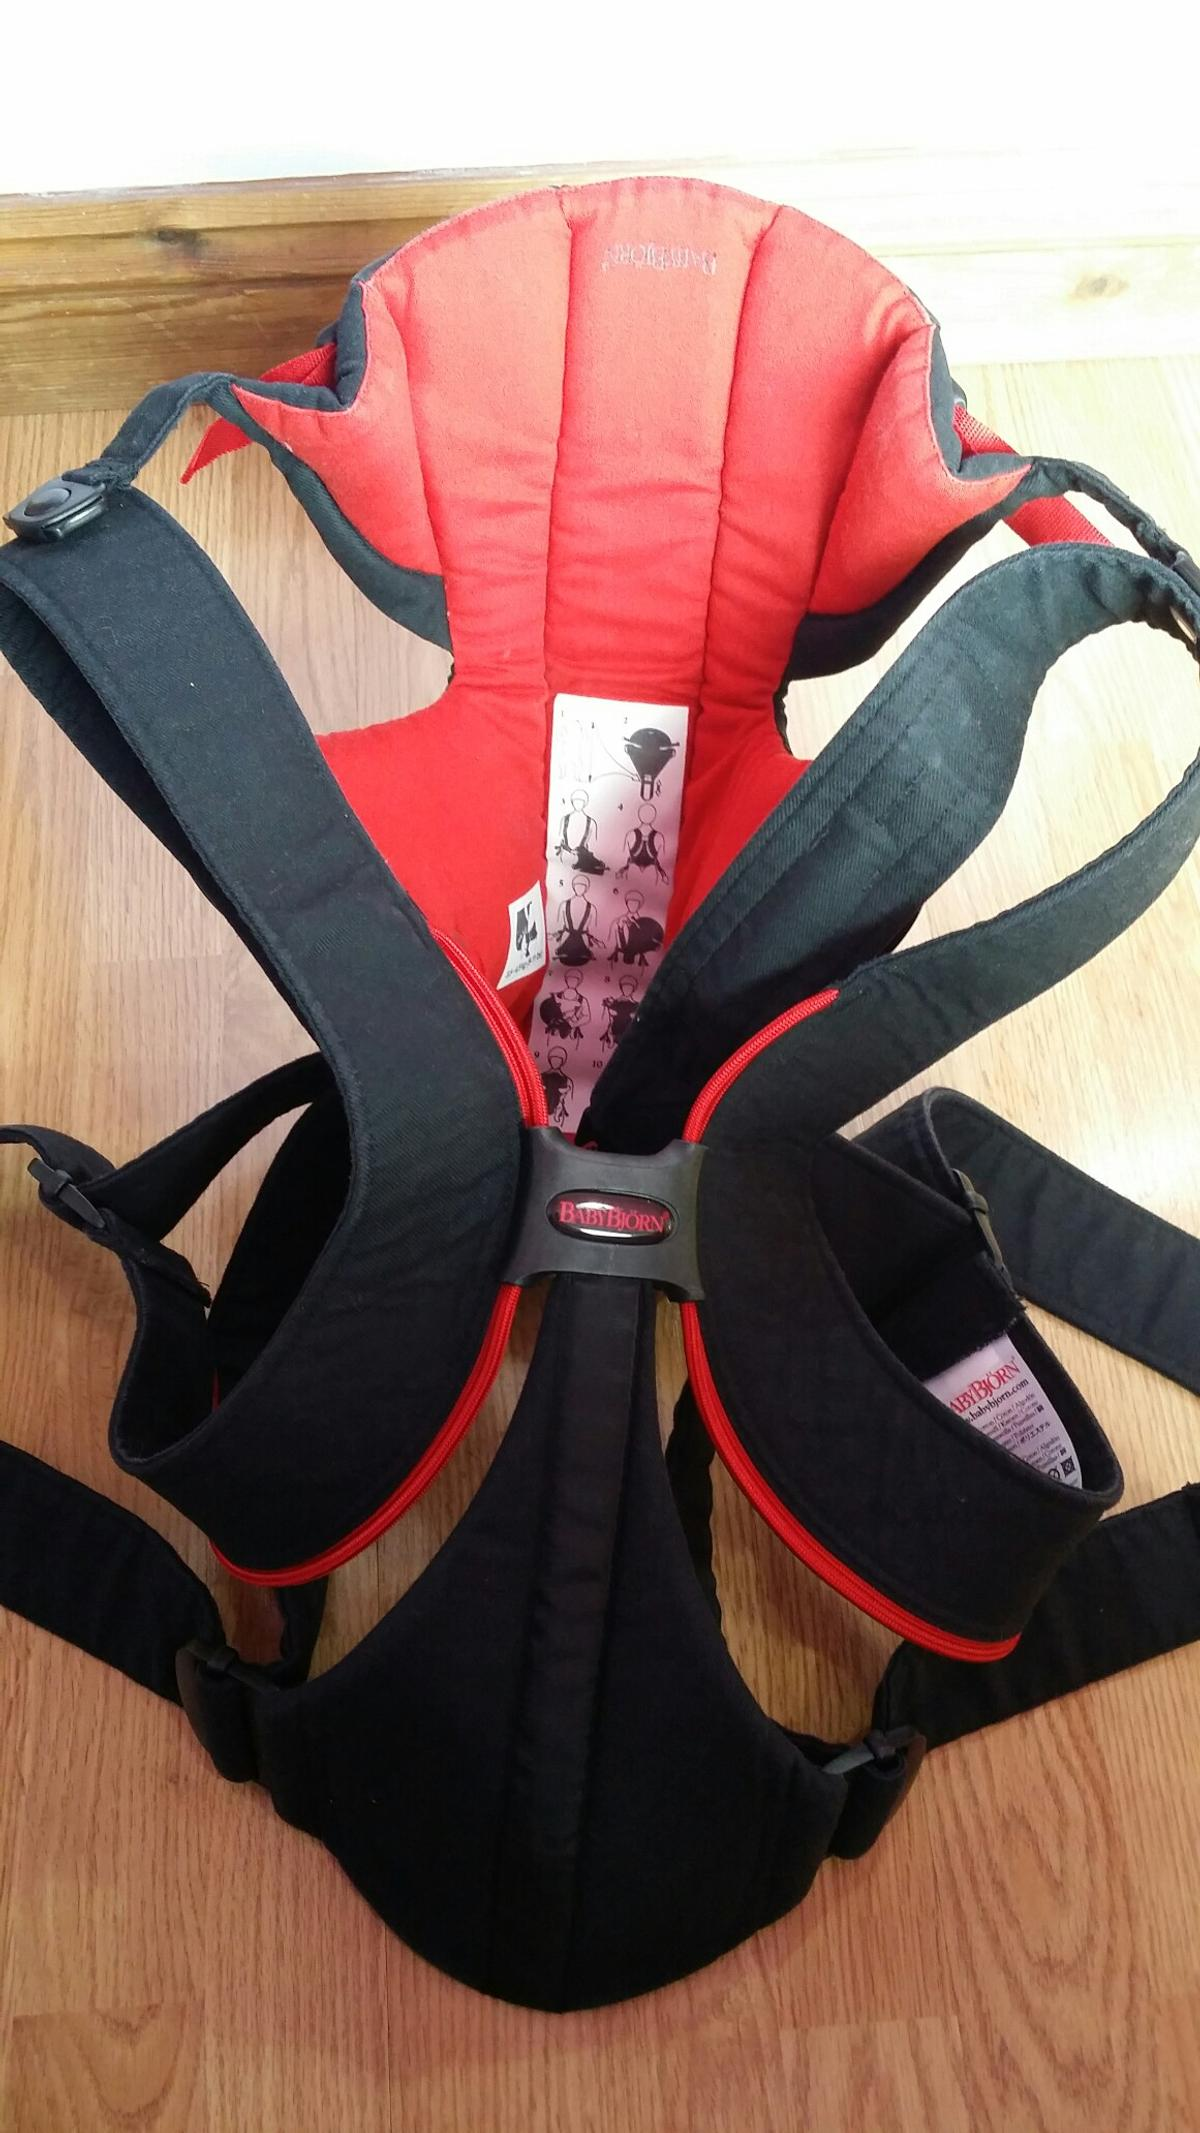 01763d74b54 BABY BJORN Active Baby Carrier Black   Red in B43 Birmingham for ...